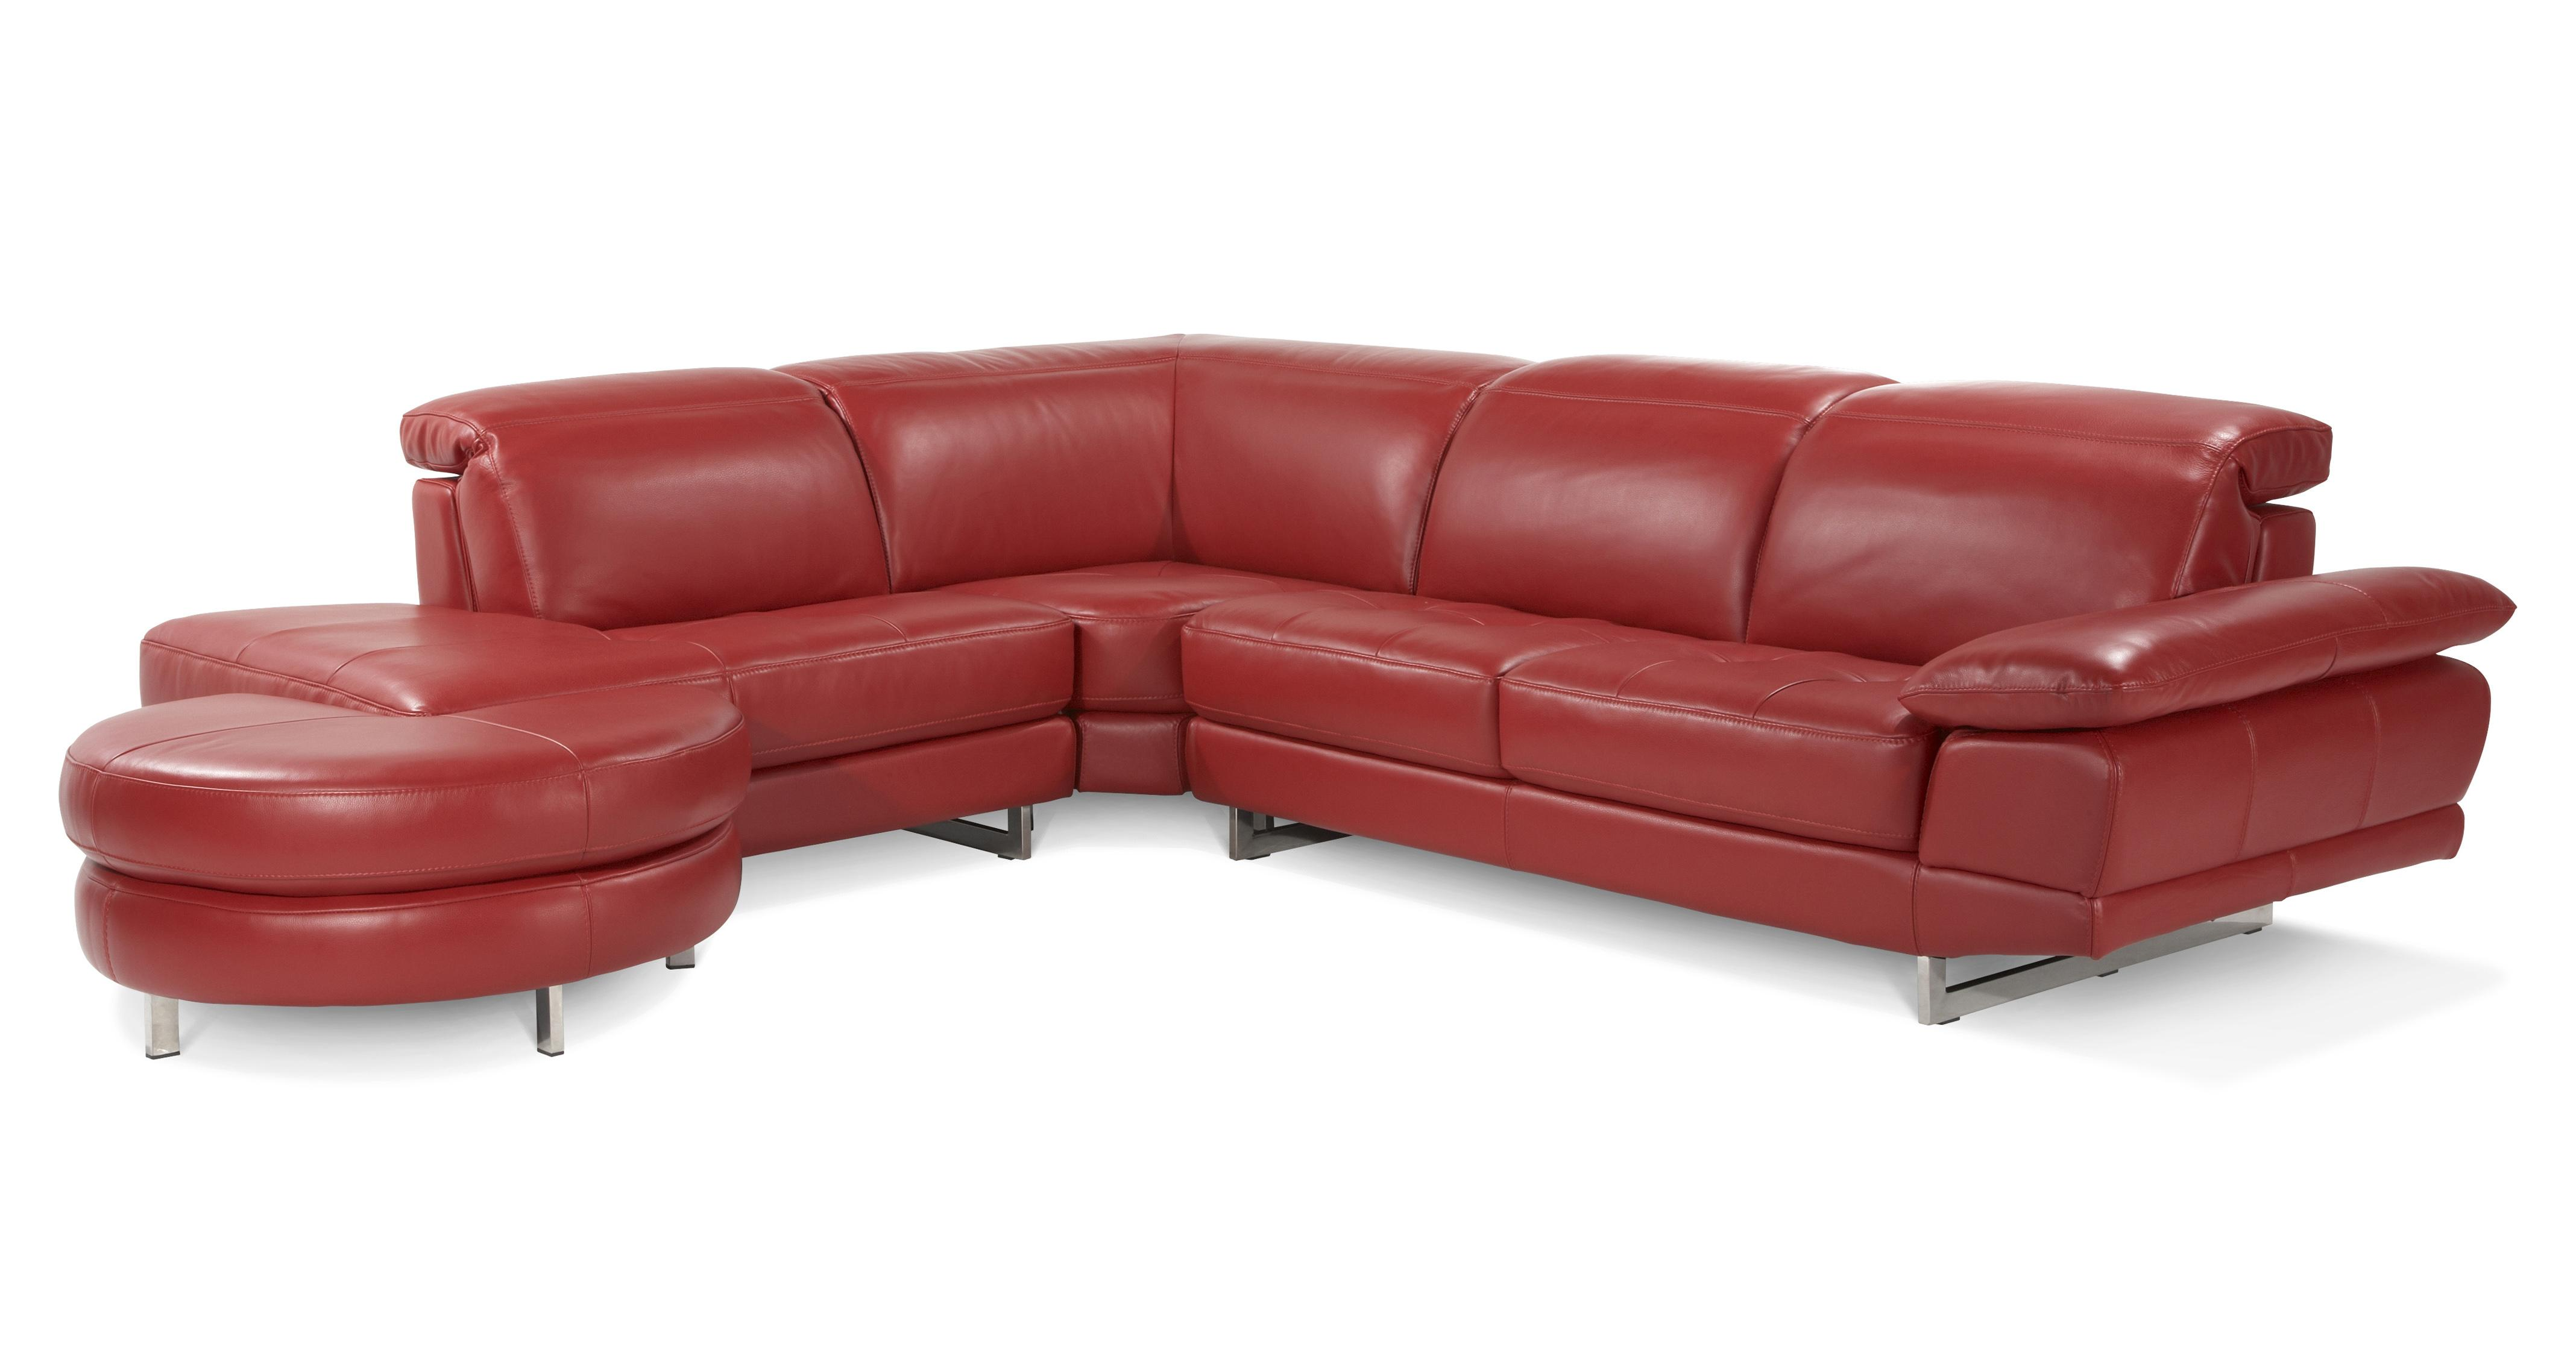 Red leather corner sofa dfs for Red corner sofa